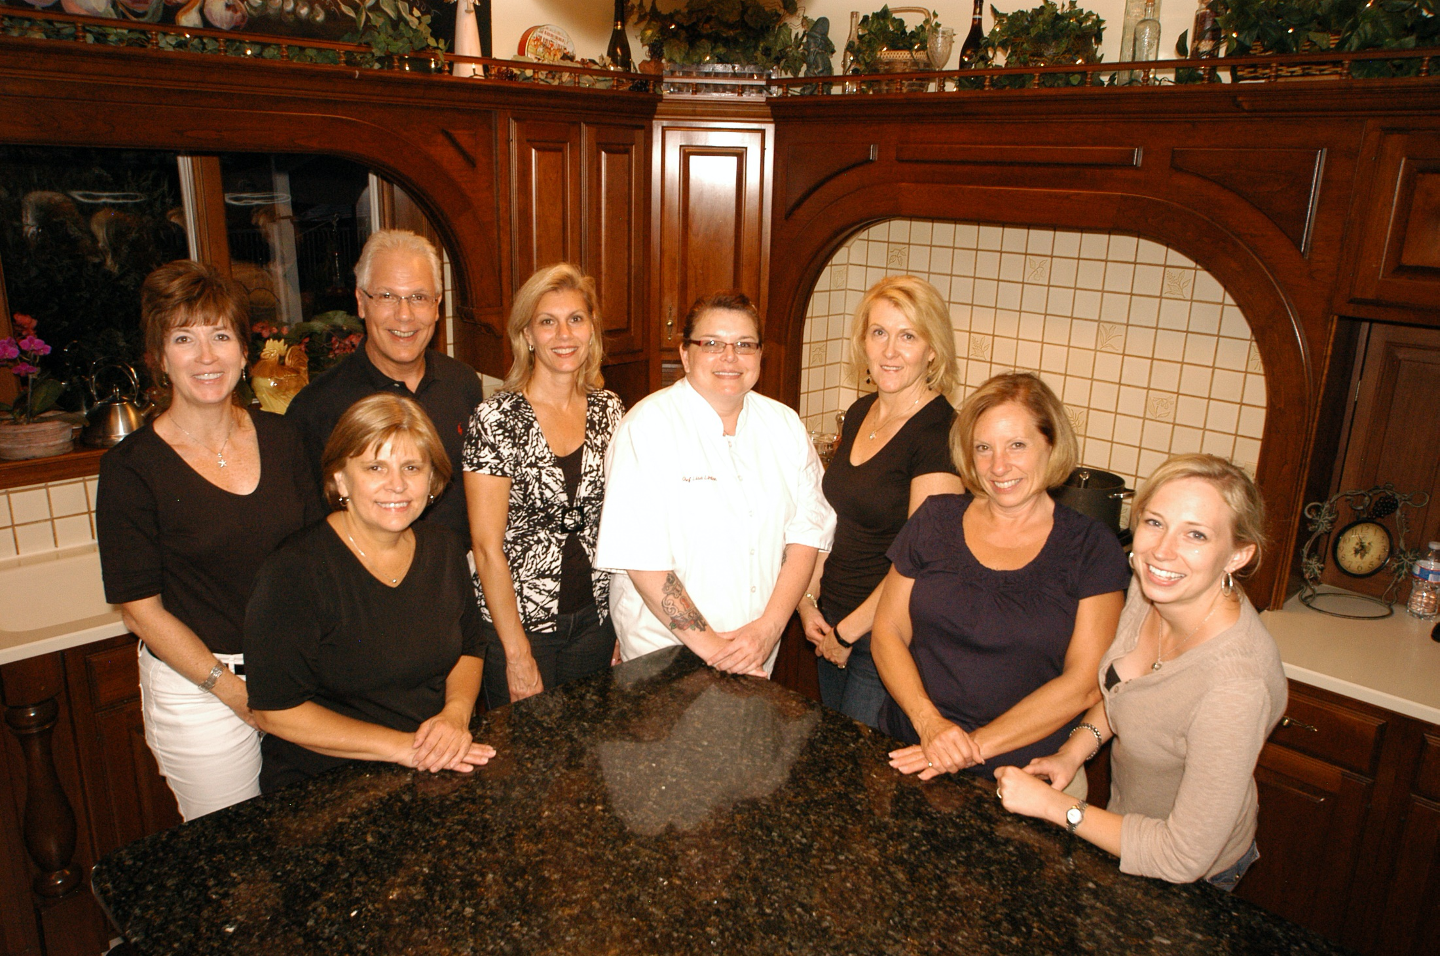 Chef in Ananville Inn kitchen surrounded by seven students for one of Annville Inn's Acclaimed Chef Cooking Classes